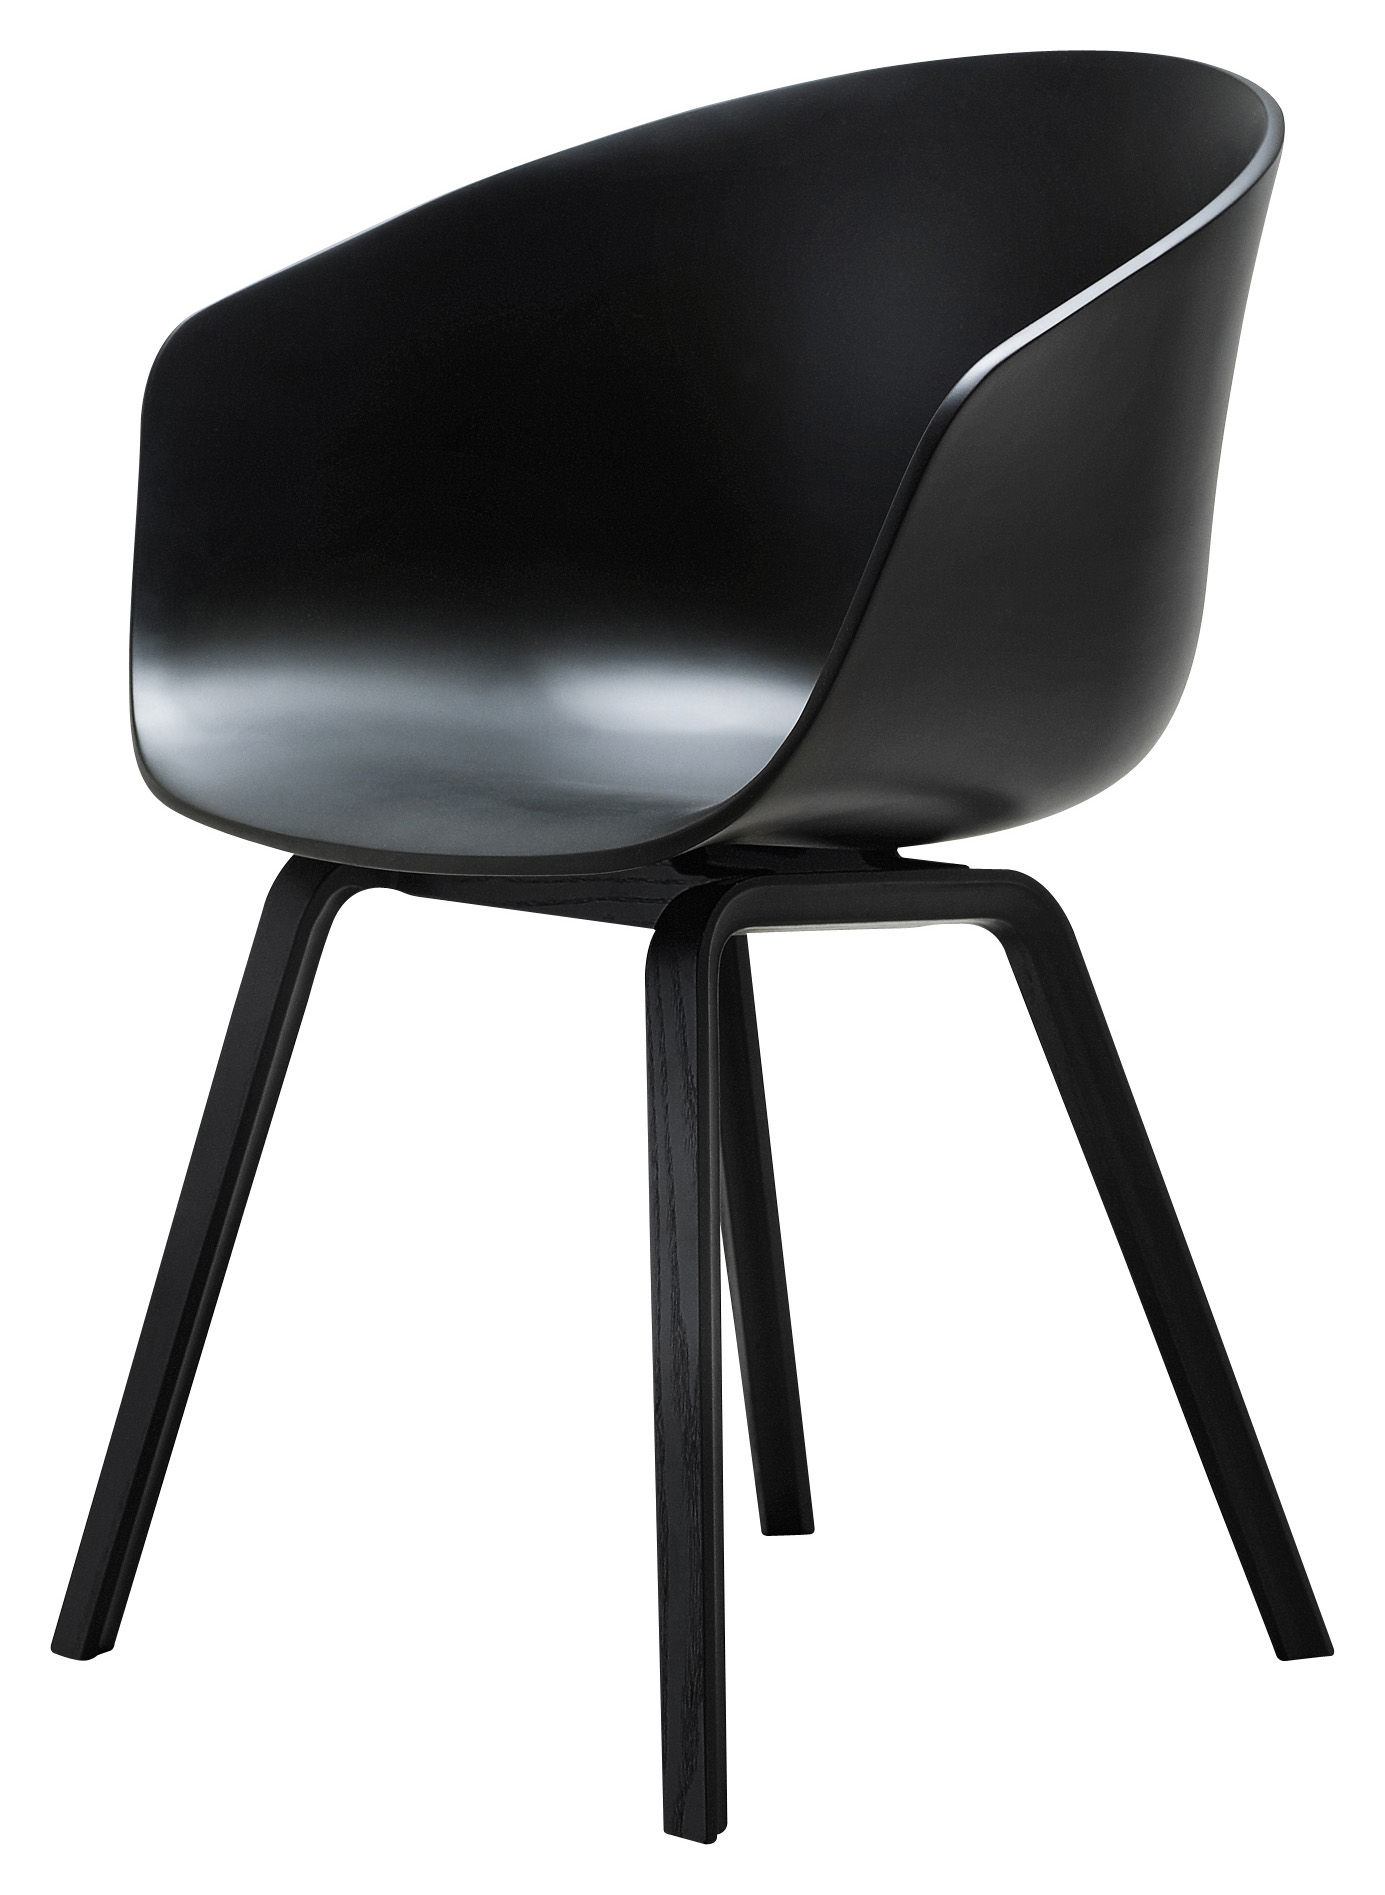 Furniture - Chairs - About a chair AAC22 Armchair - Plastic shell & wood legs by Hay - Black / Black feet - Polypropylene, Tinted ashwood